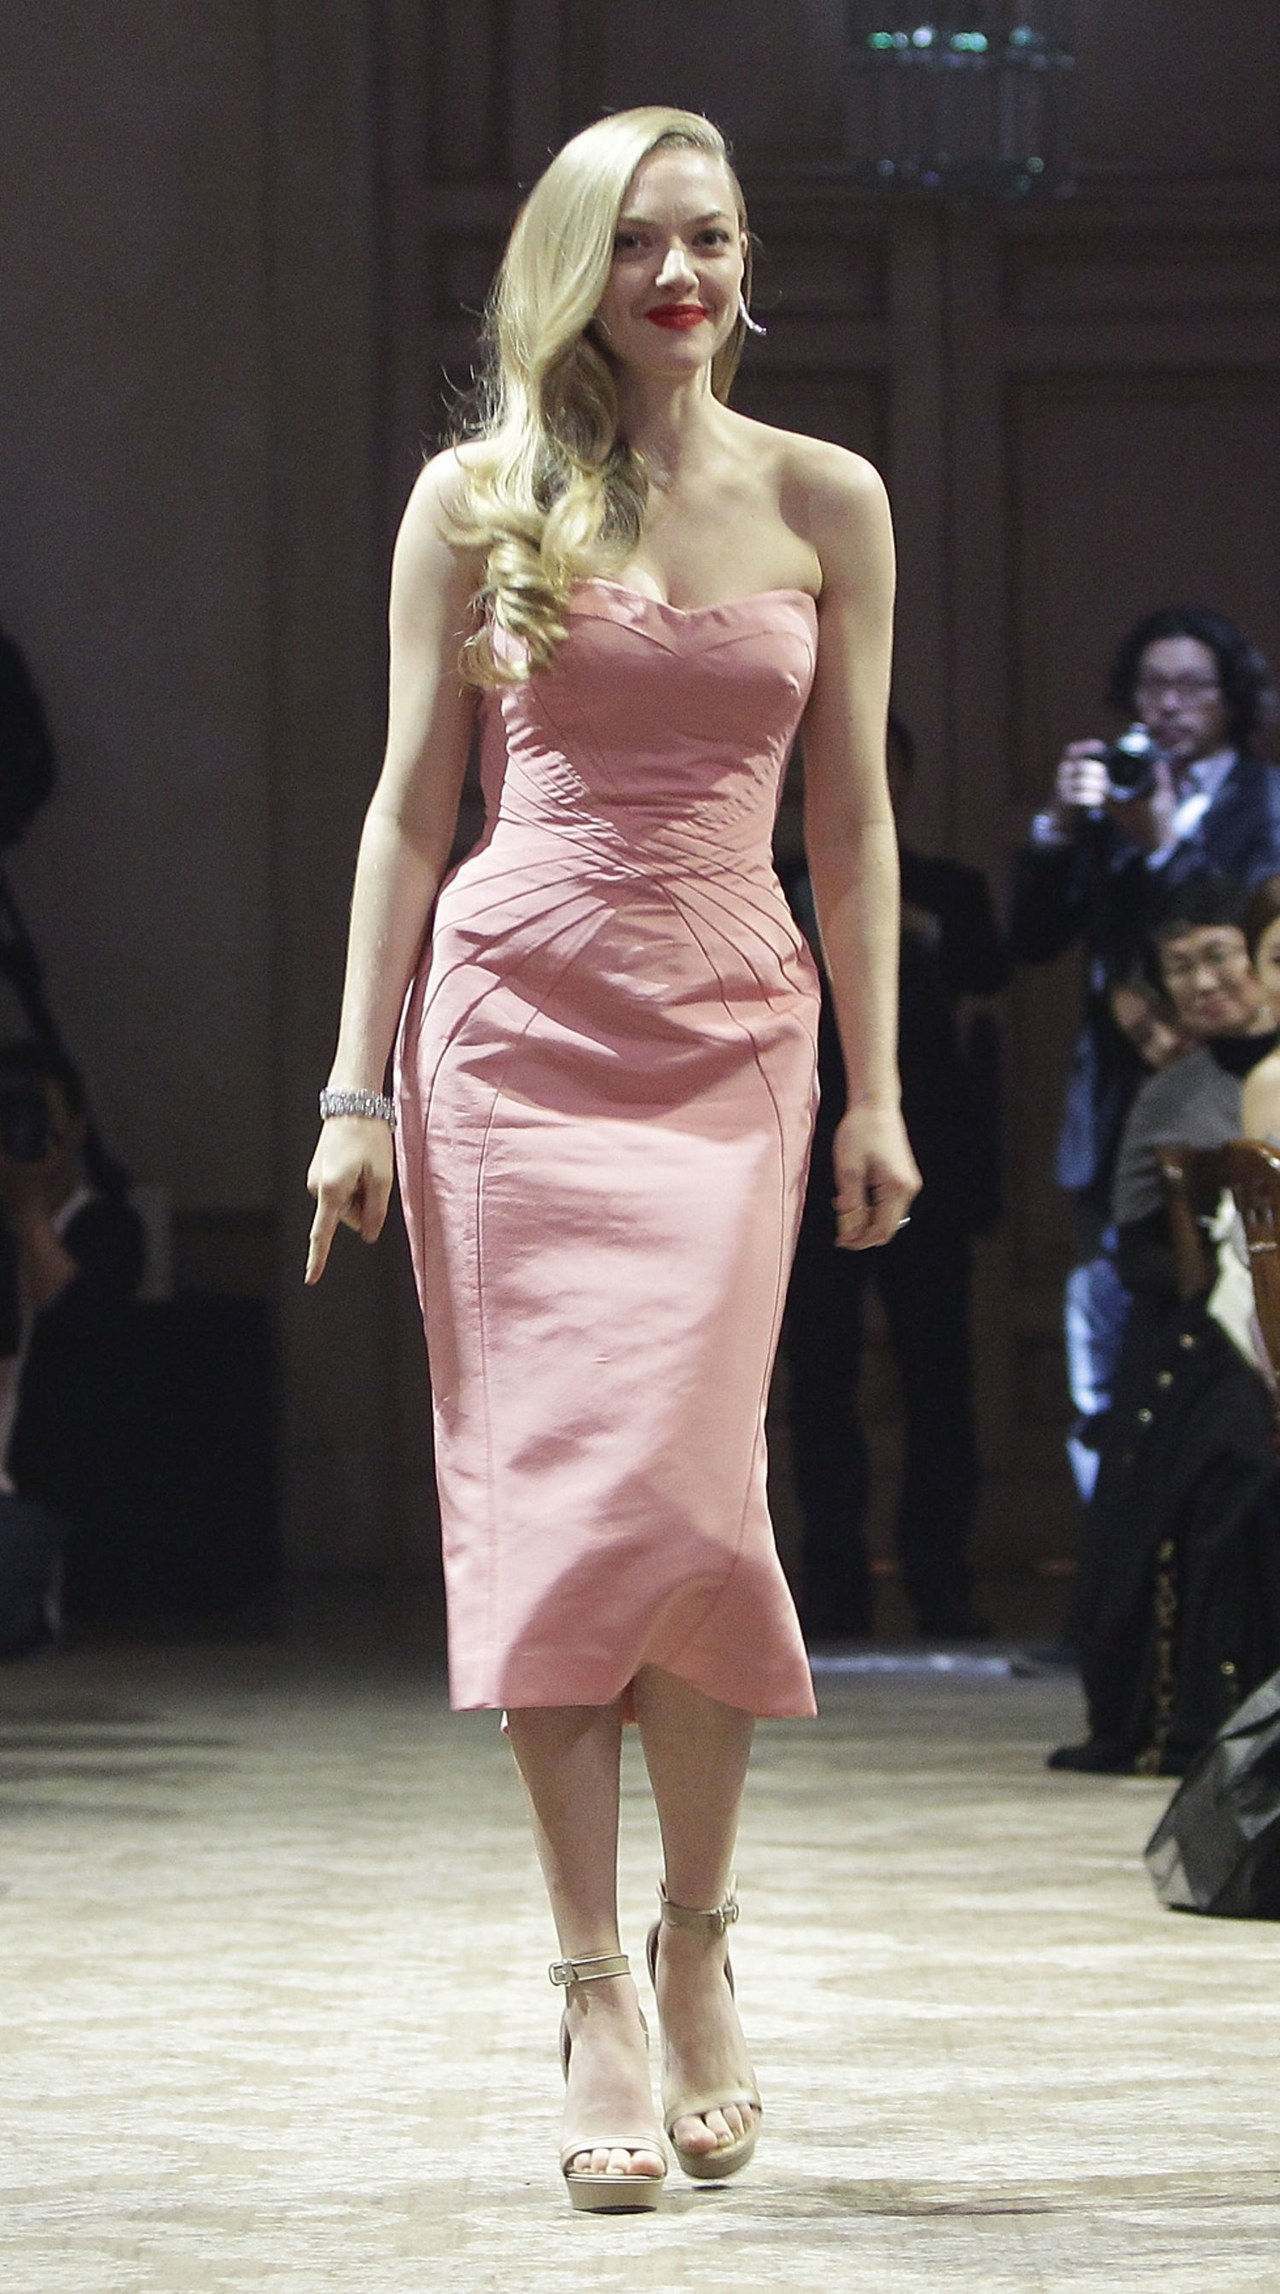 अमांडा seyfried zac posen pink dress